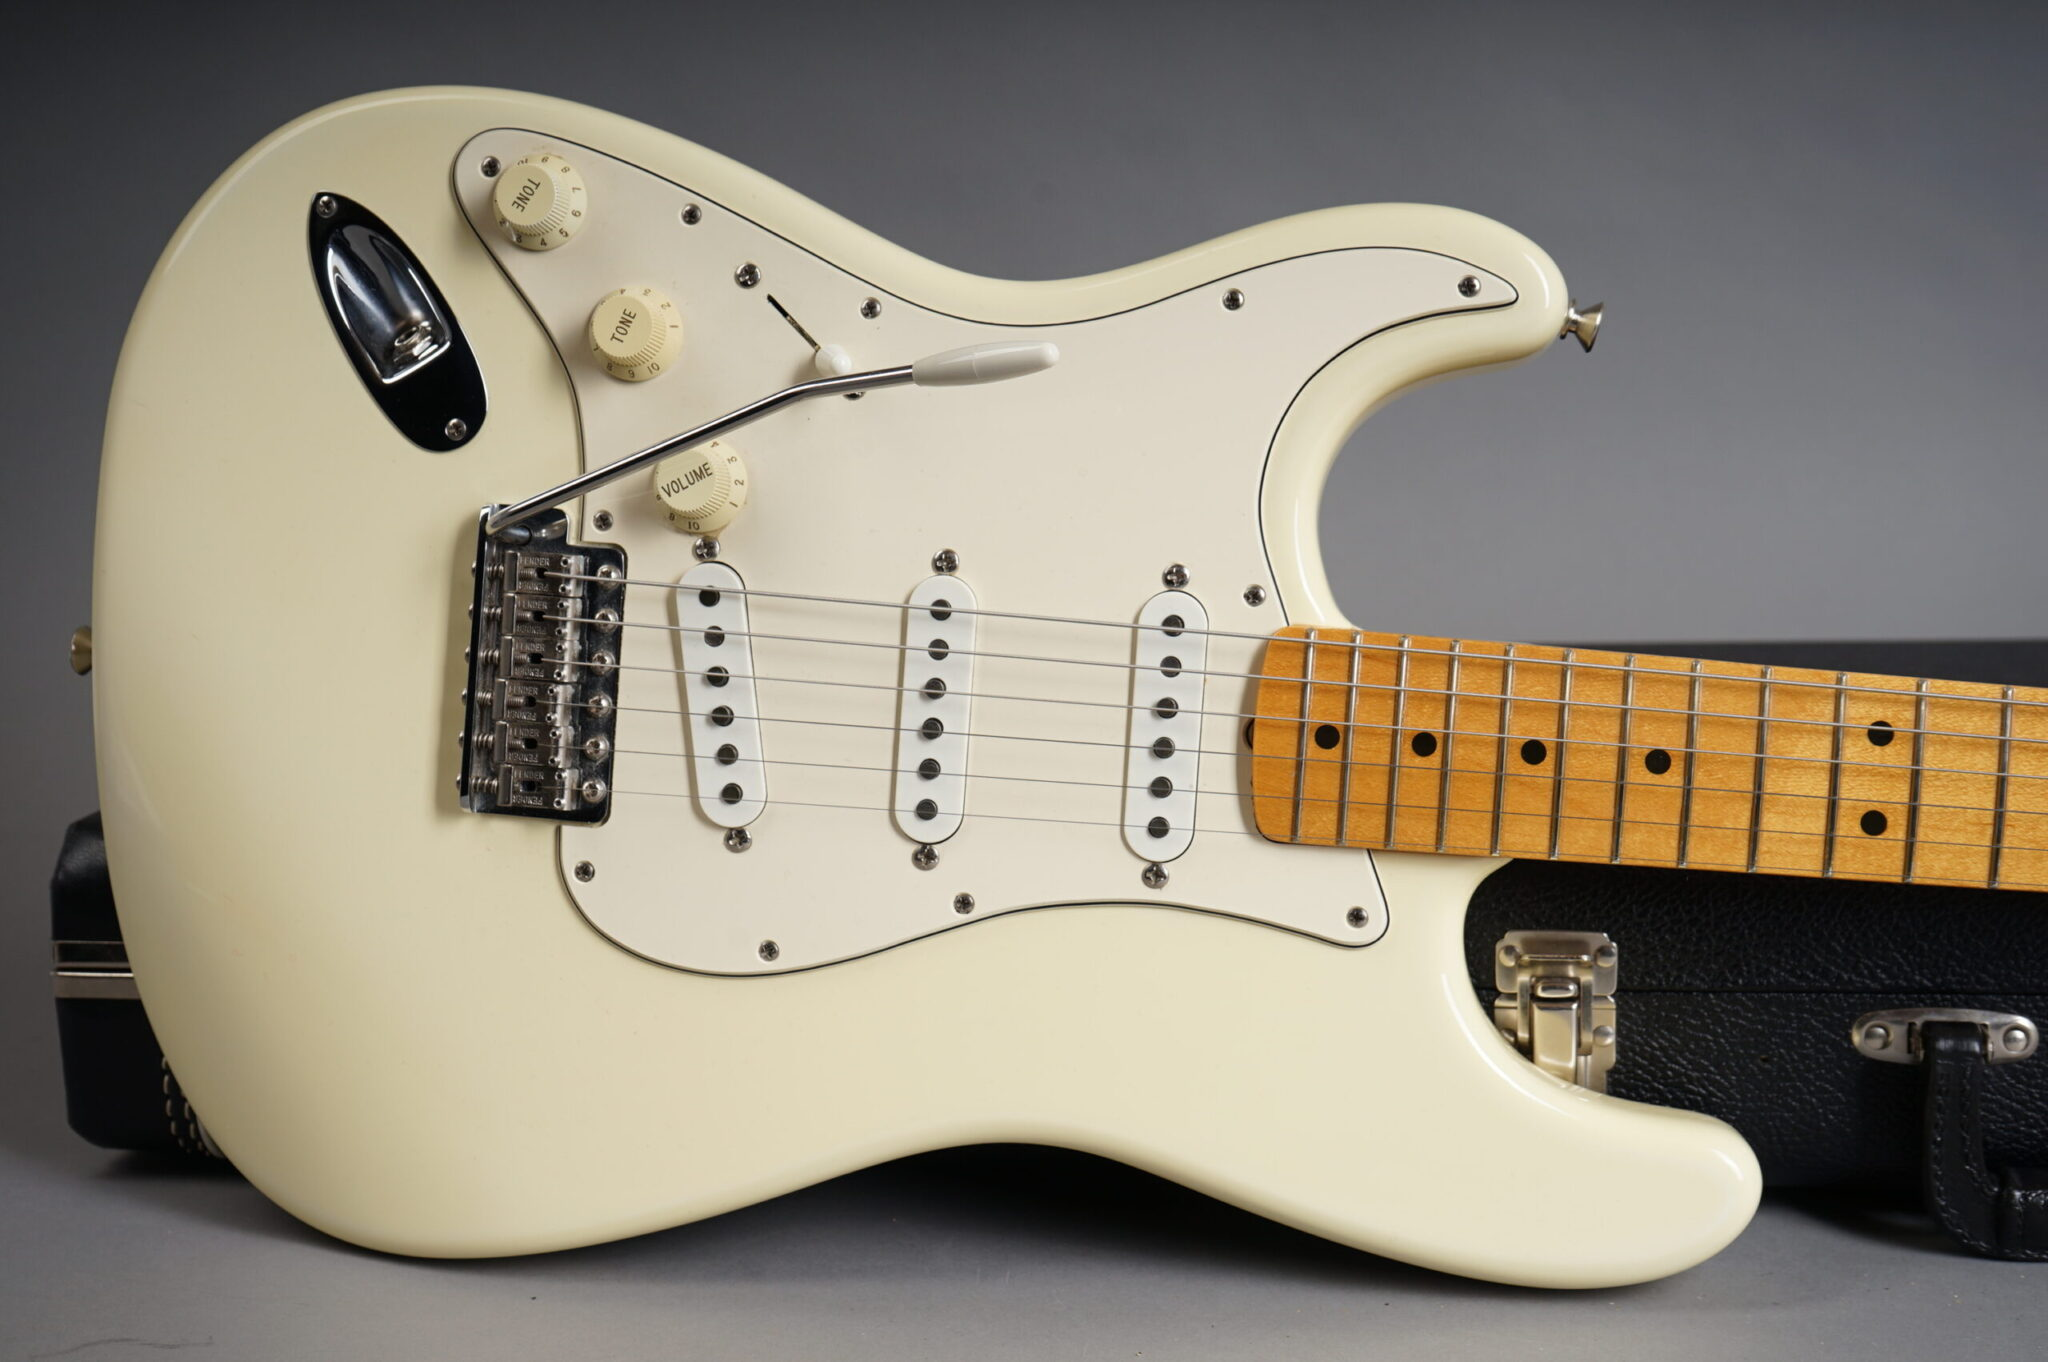 https://guitarpoint.de/app/uploads/products/1997-fender-jimi-hendrix-tribute-stratocaster-olympic-white-2/1997-Fender-Jimi-Hendrix-Tribute-Strat-TN700675-9-scaled-2048x1362.jpg